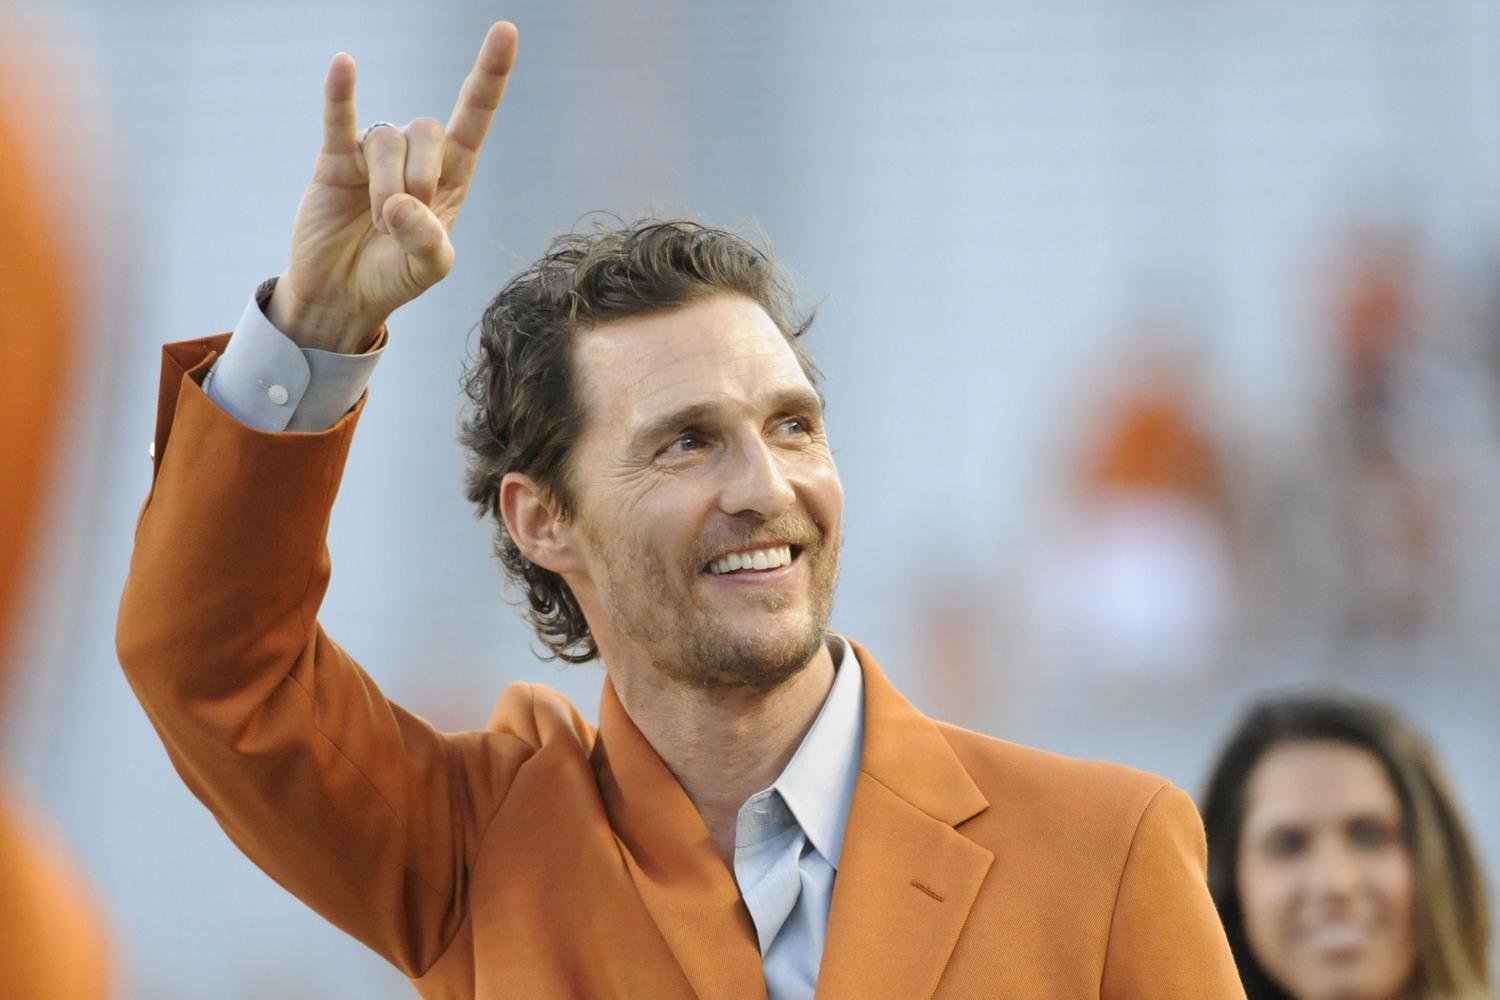 Fun fact: Matthew McConaughey was born in Uvalde, TX, twice the home of the World Gliding Championships. Hang-gliding seems like an appropriately chill activity for Matthew to enjoy.